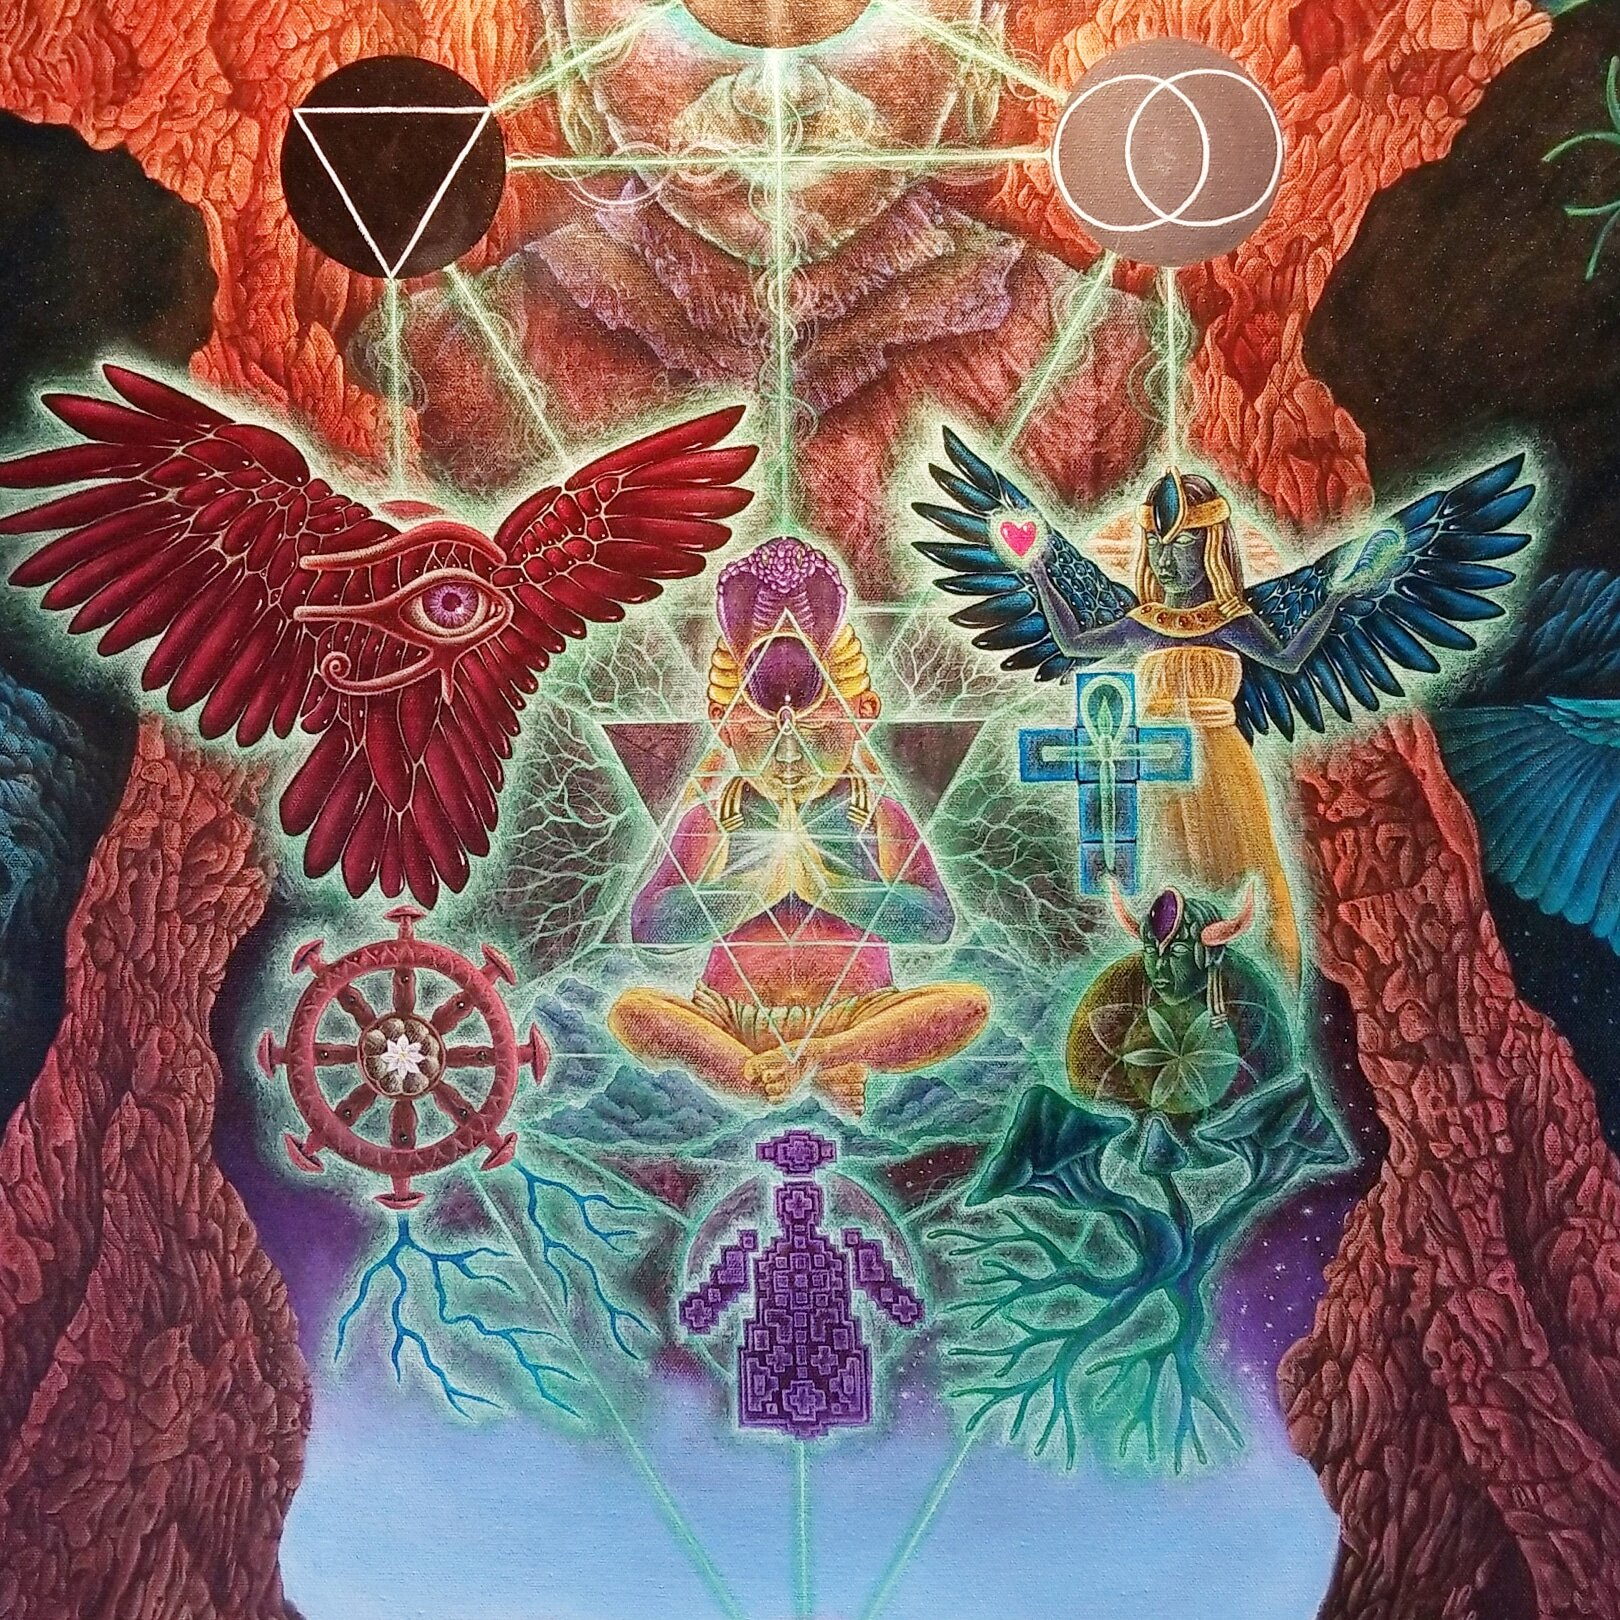 Art by Zachary Brown, Visionary Voyager